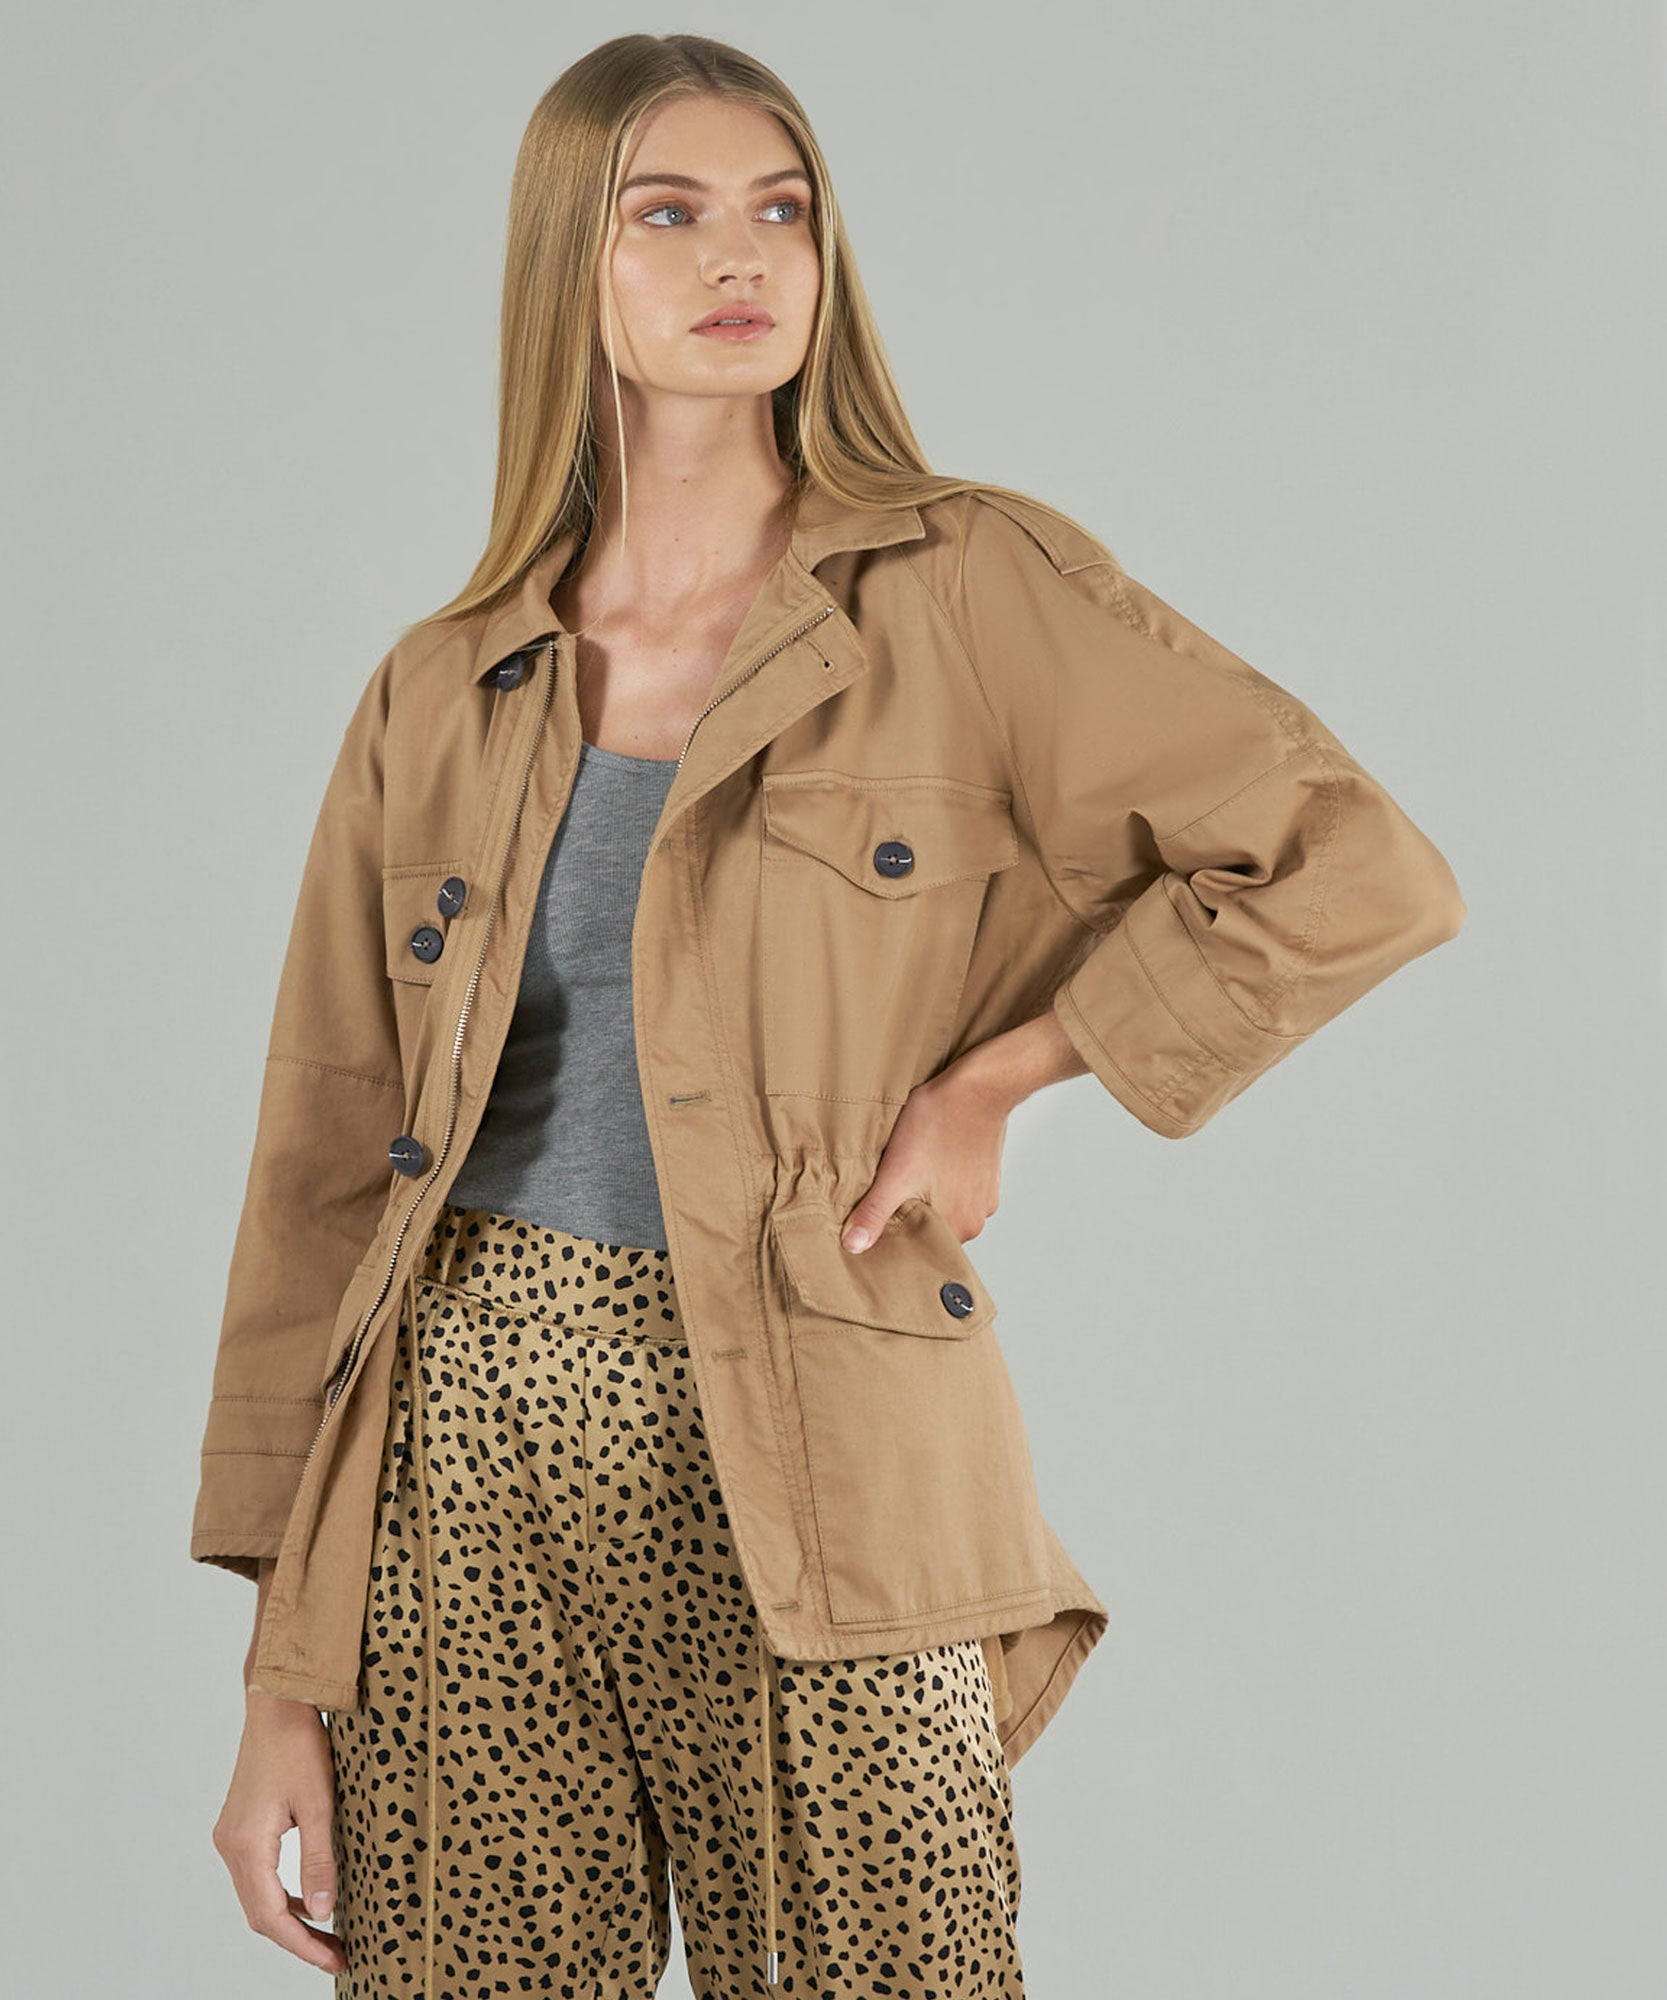 Camel Cotton Twill Army Jacket - Women's Jacket by ATM Anthony Thomas Melillo